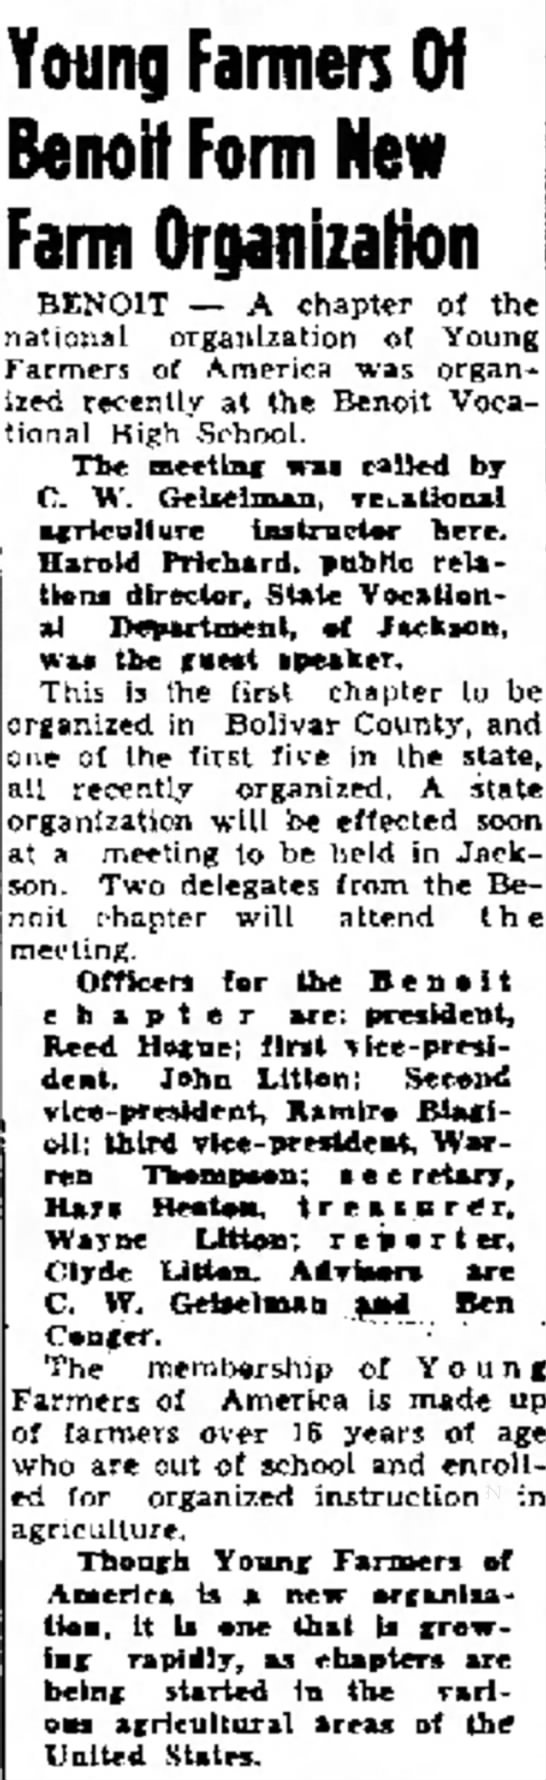 30 Sep 1949 The Delta Democrat Times Greenville MS